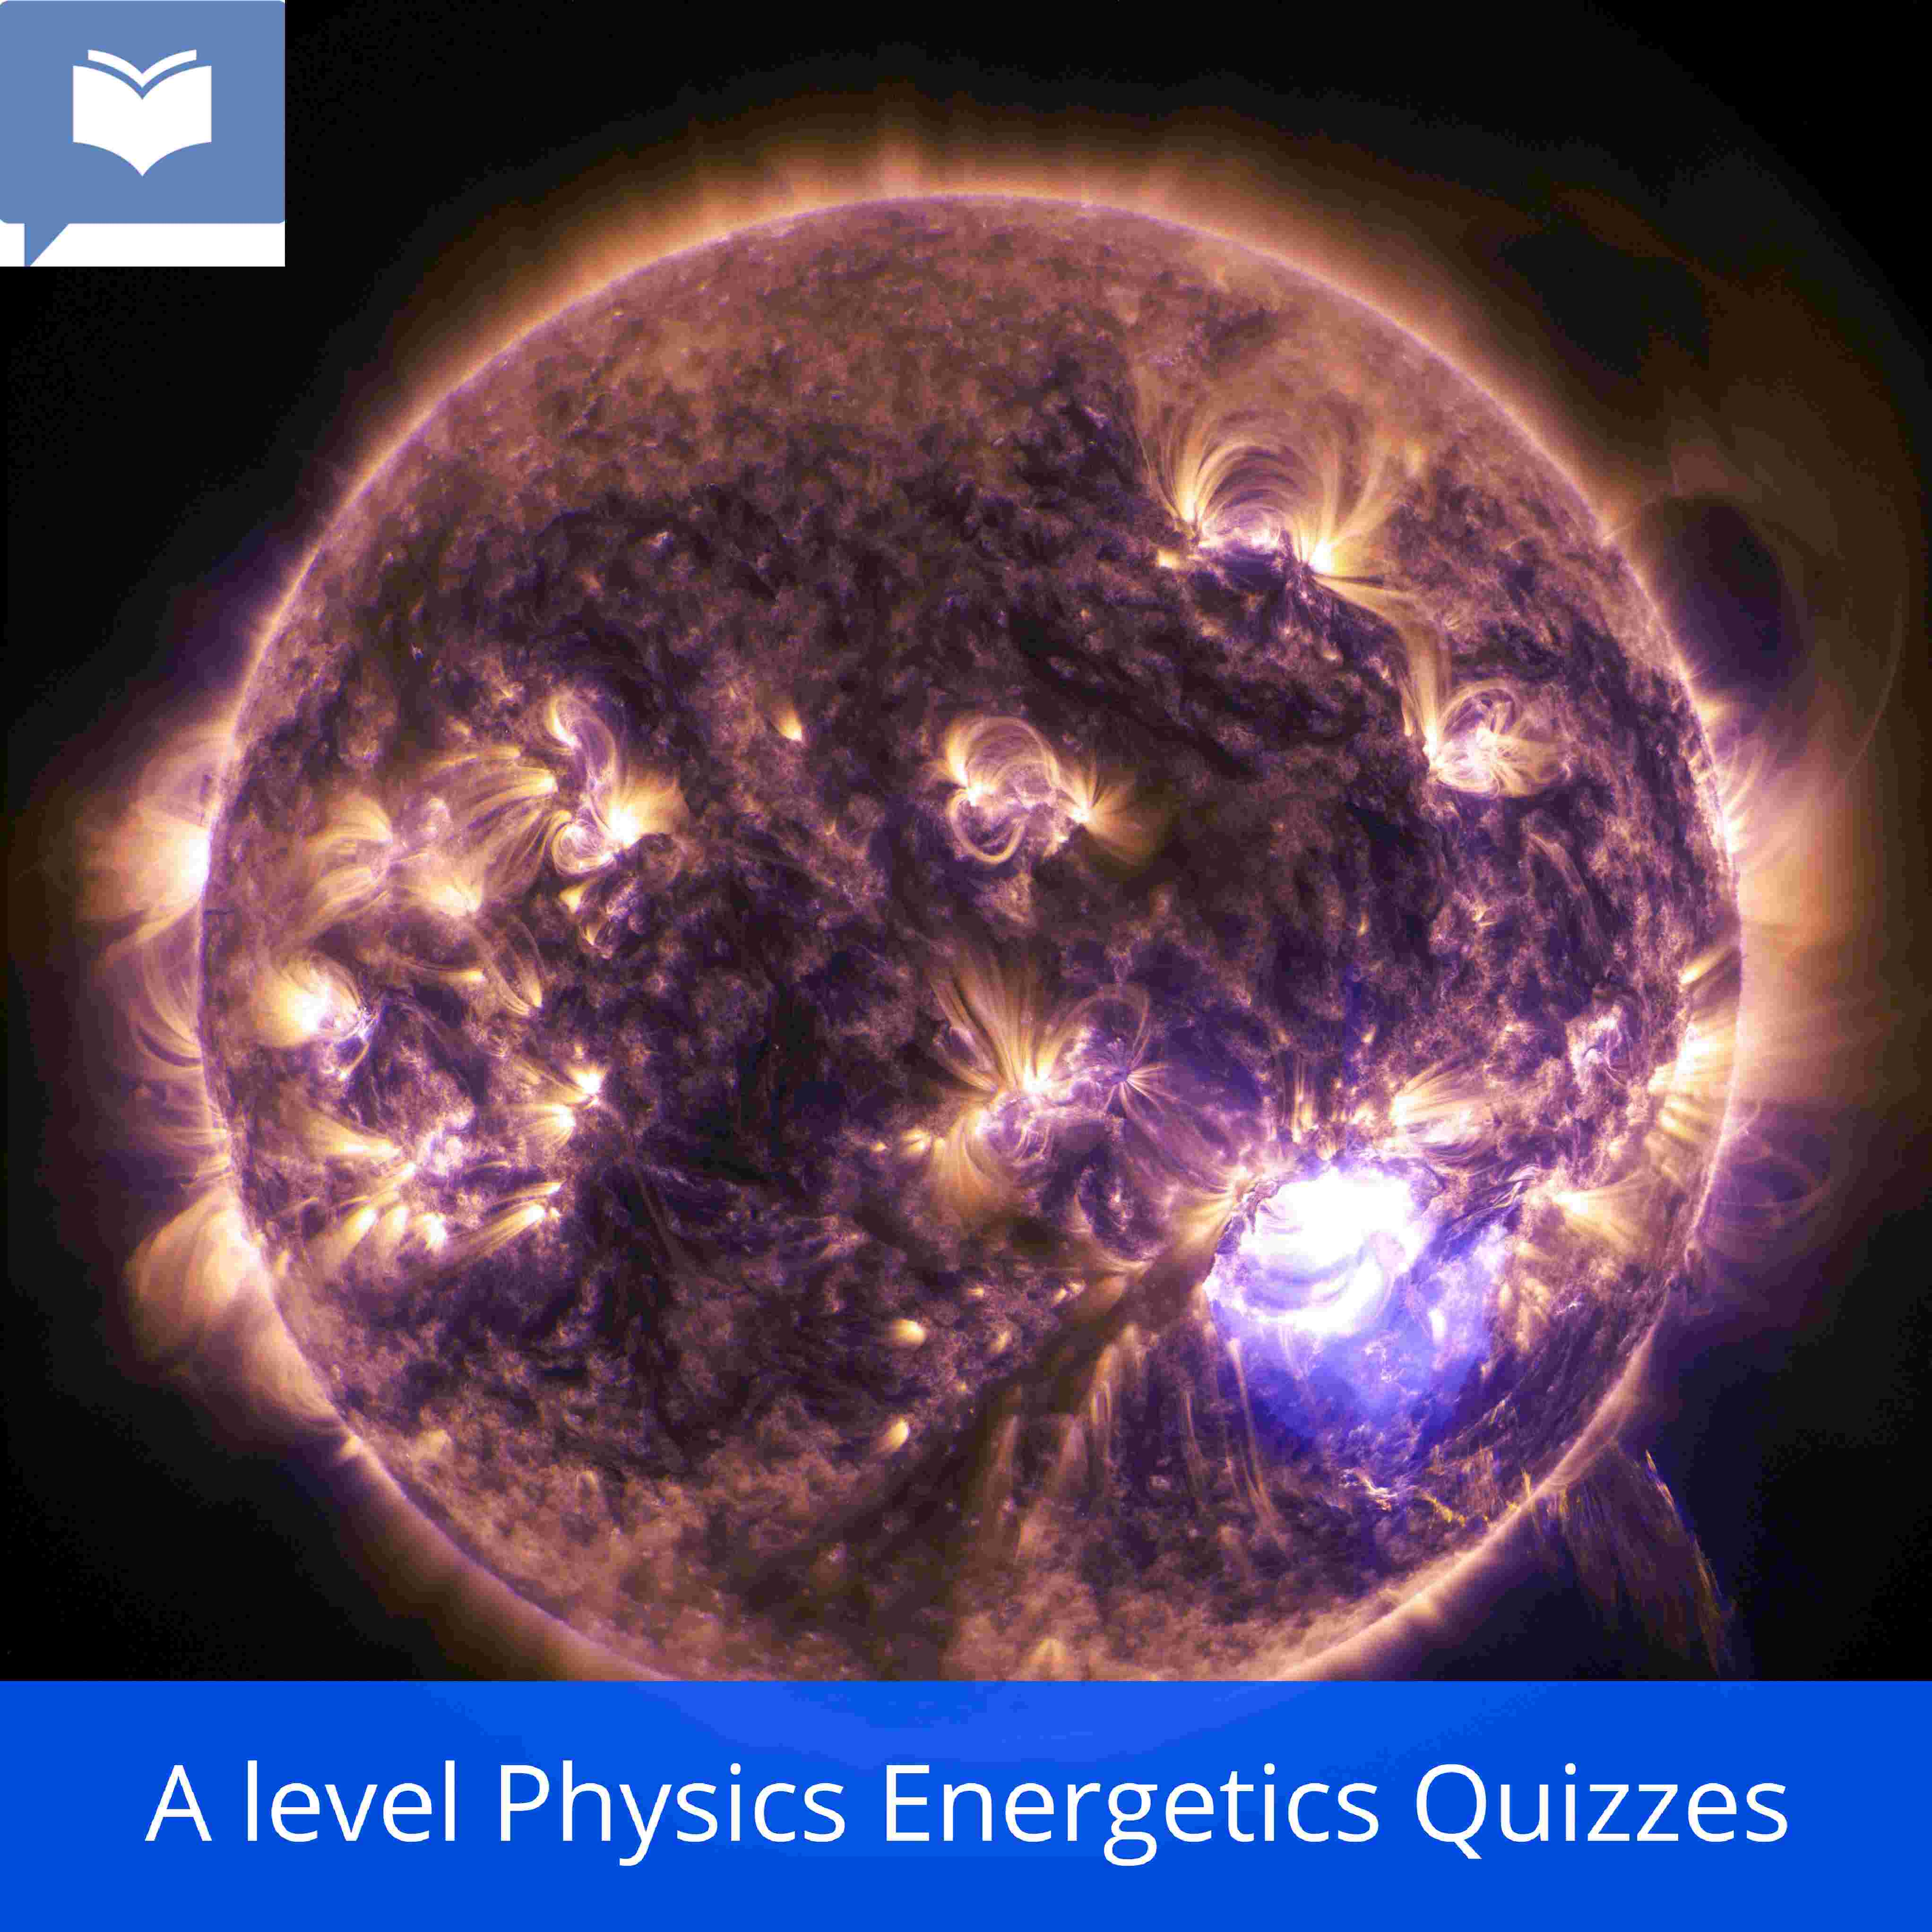 A level Physics Energetics Quizzes